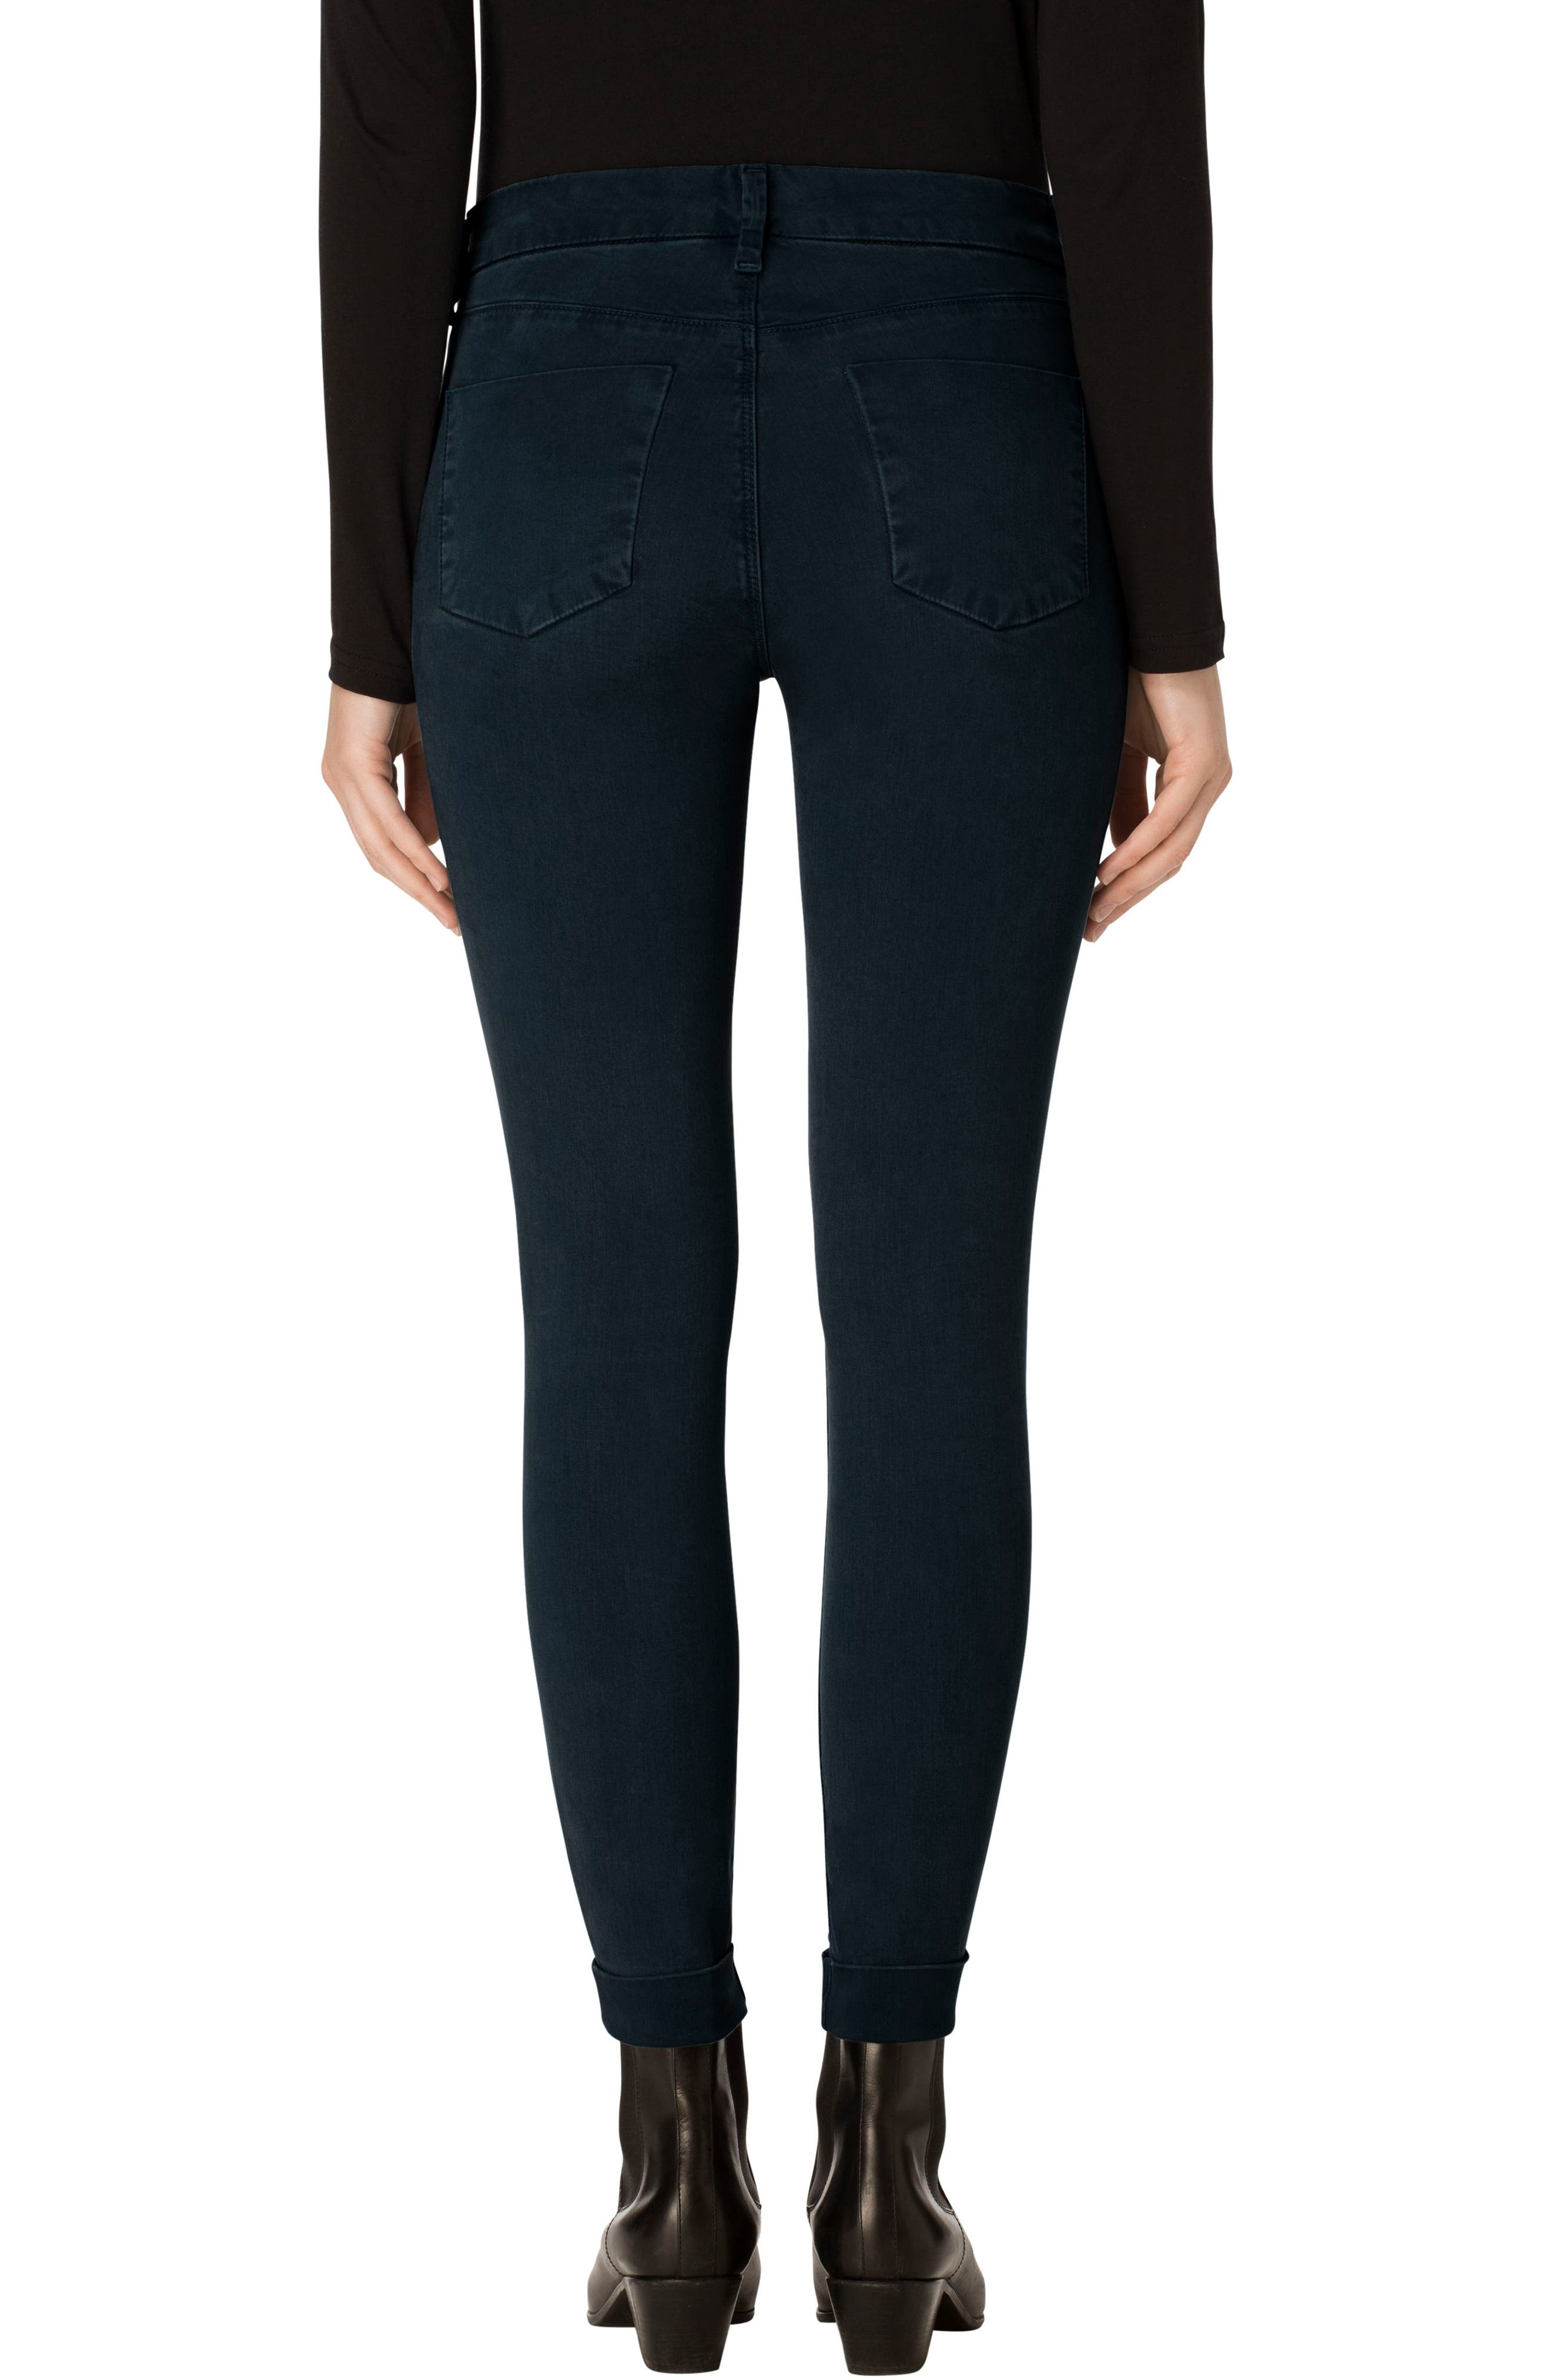 'Anja' Cuffed Crop Skinny Jeans,                             Alternate thumbnail 9, color,